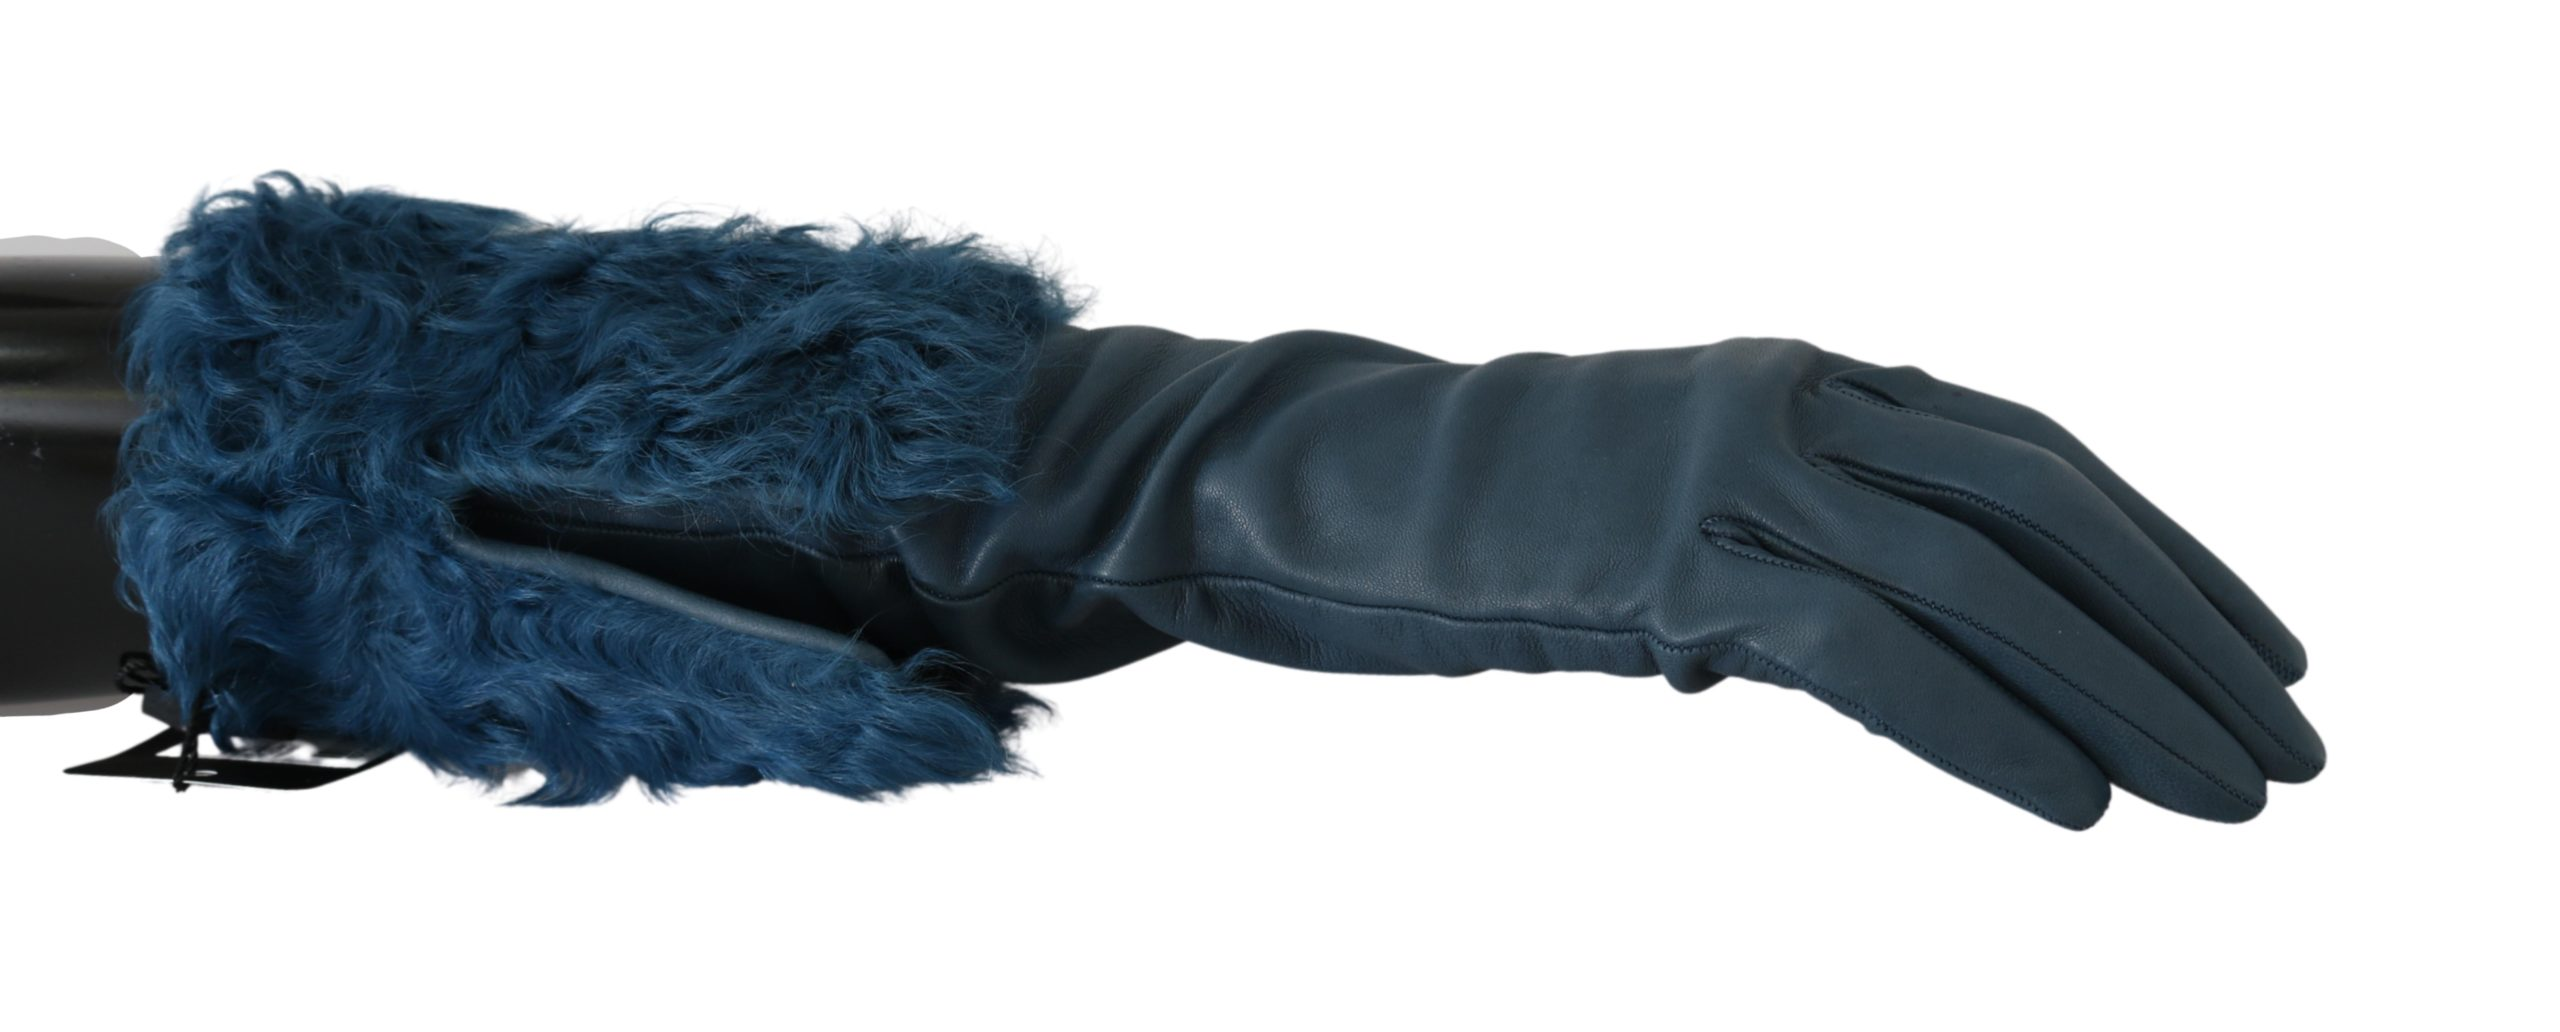 Dolce & Gabbana Women's Mid Arm Leather Shearling Fur Gloves Blue LB1010 - 7|S